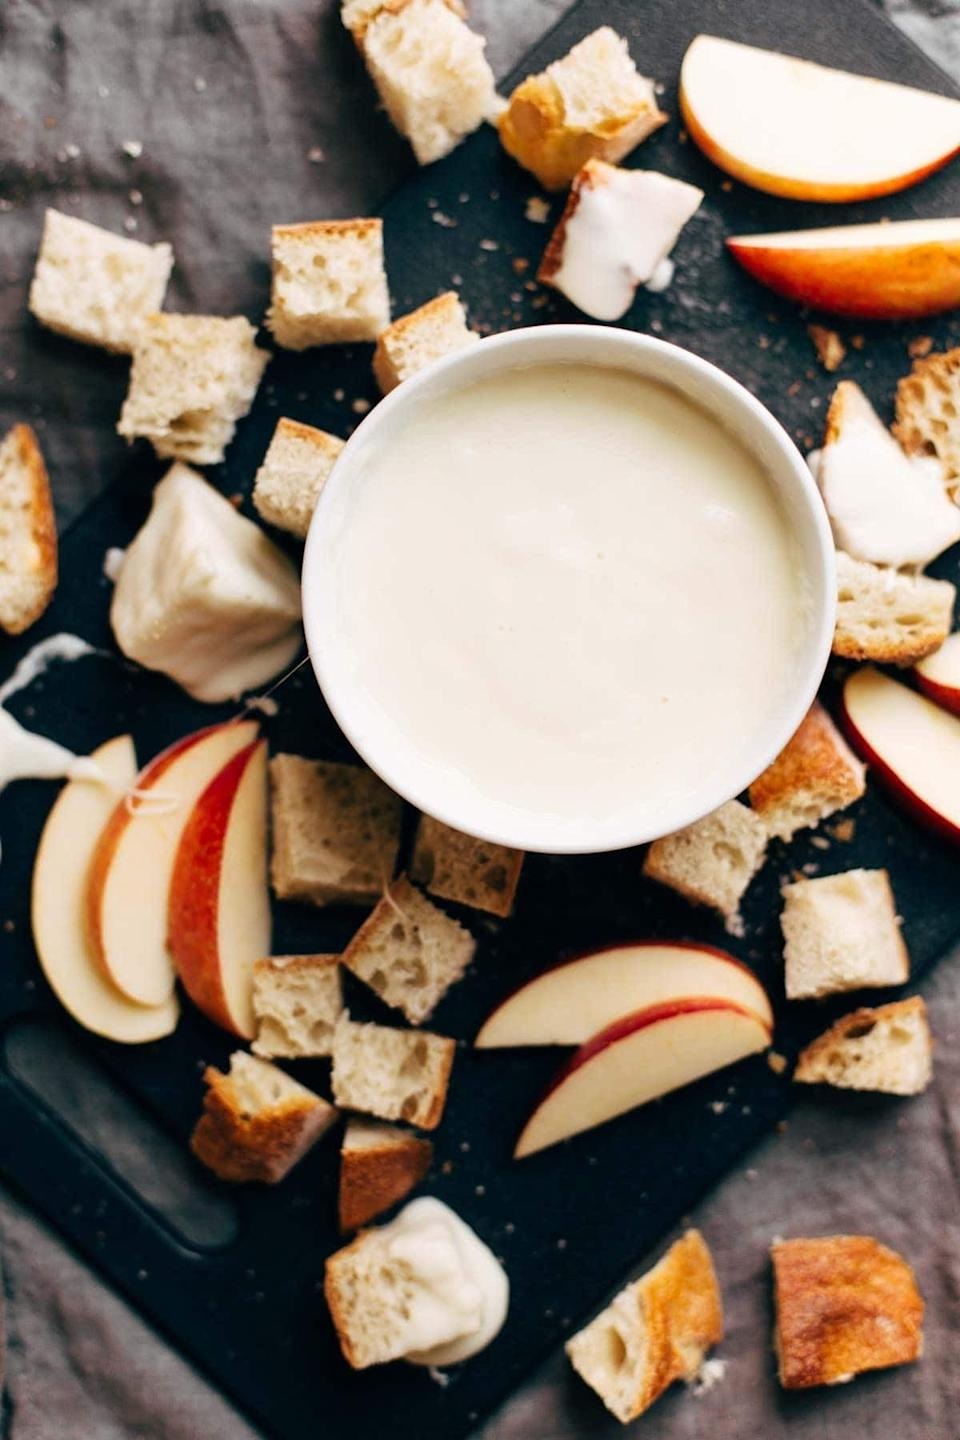 "<p>Fancy, classy, and delicious - that's exactly what this creamy fondue is. With a dash of white wine and a whole lot of Swiss cheese, this fondue will make your taste buds come to life when you enjoy it with warm French bread and crisp apples. Oh, and of course, a bottle of wine!</p> <p><strong>Get the recipe</strong>: <a href=""https://pinchofyum.com/easy-cheese-fondue"" class=""link rapid-noclick-resp"" rel=""nofollow noopener"" target=""_blank"" data-ylk=""slk:white wine and Swiss cheese fondue"">white wine and Swiss cheese fondue</a></p>"